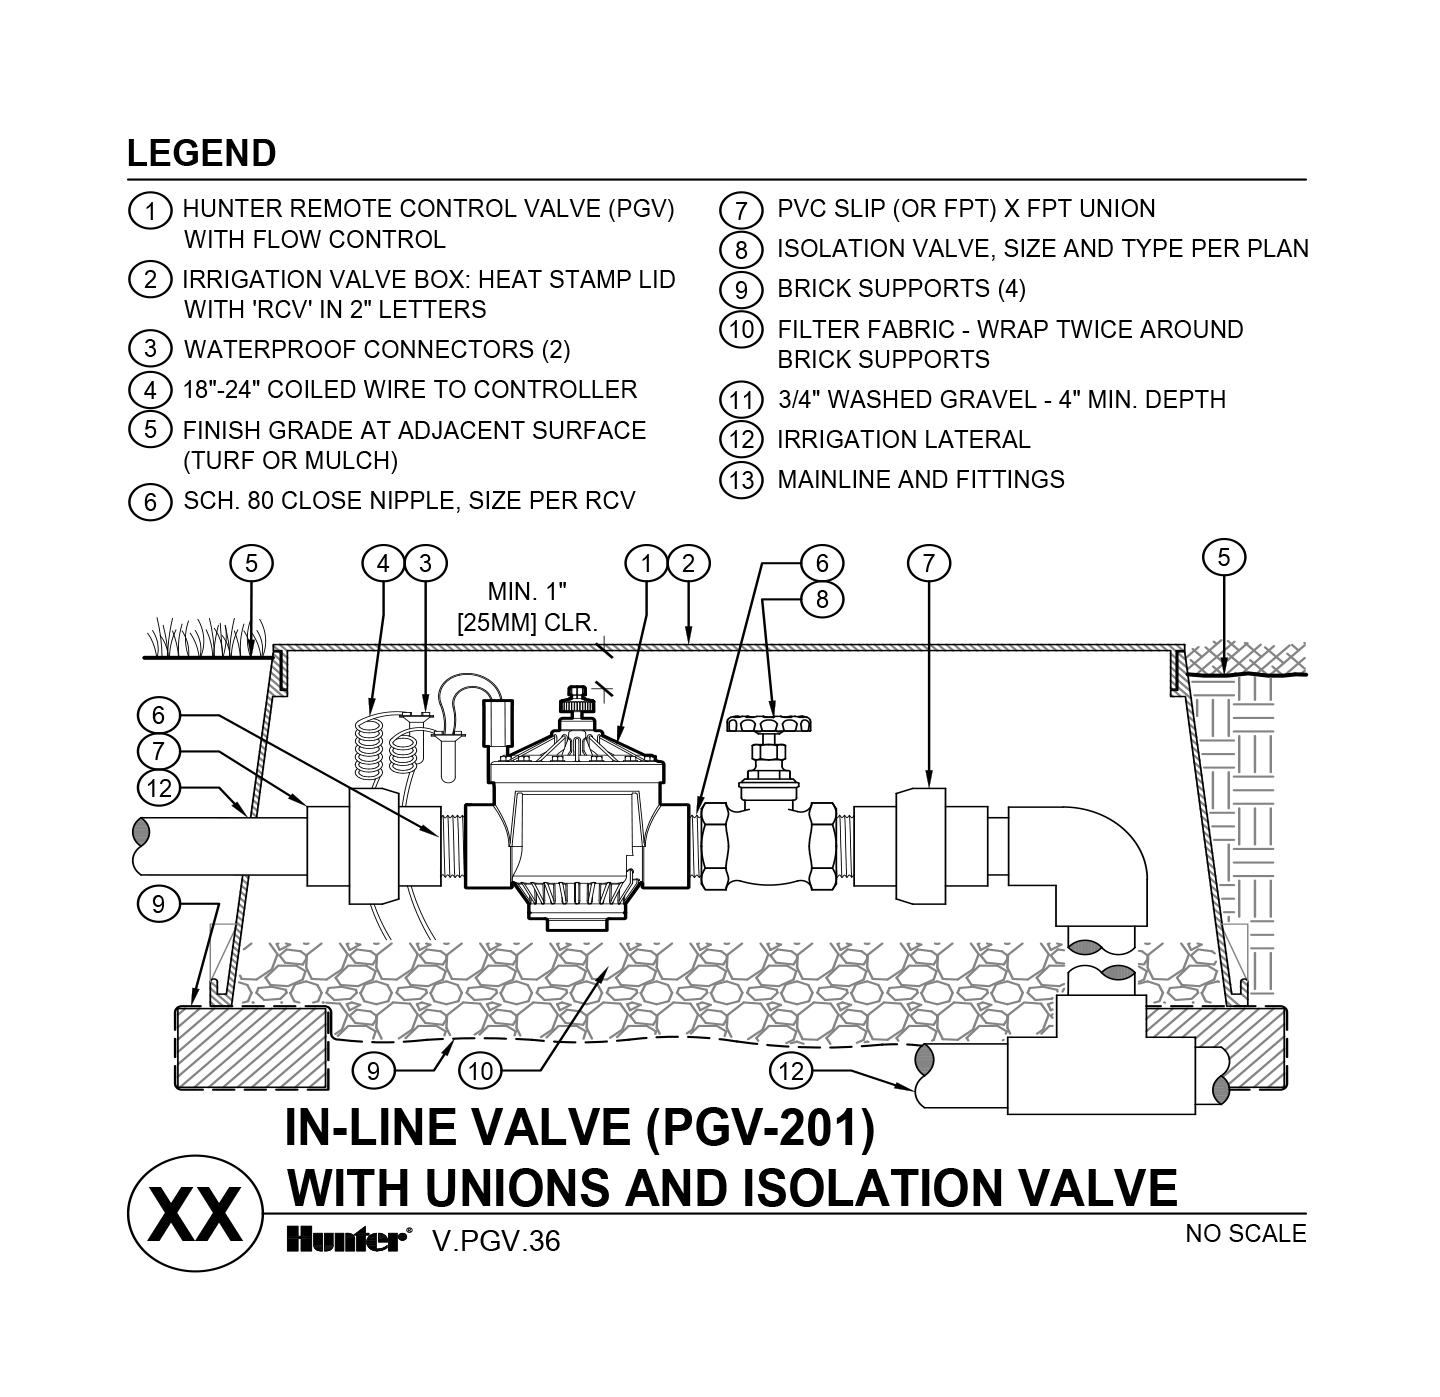 hight resolution of cad pgv 201 with unions and shutoff valve